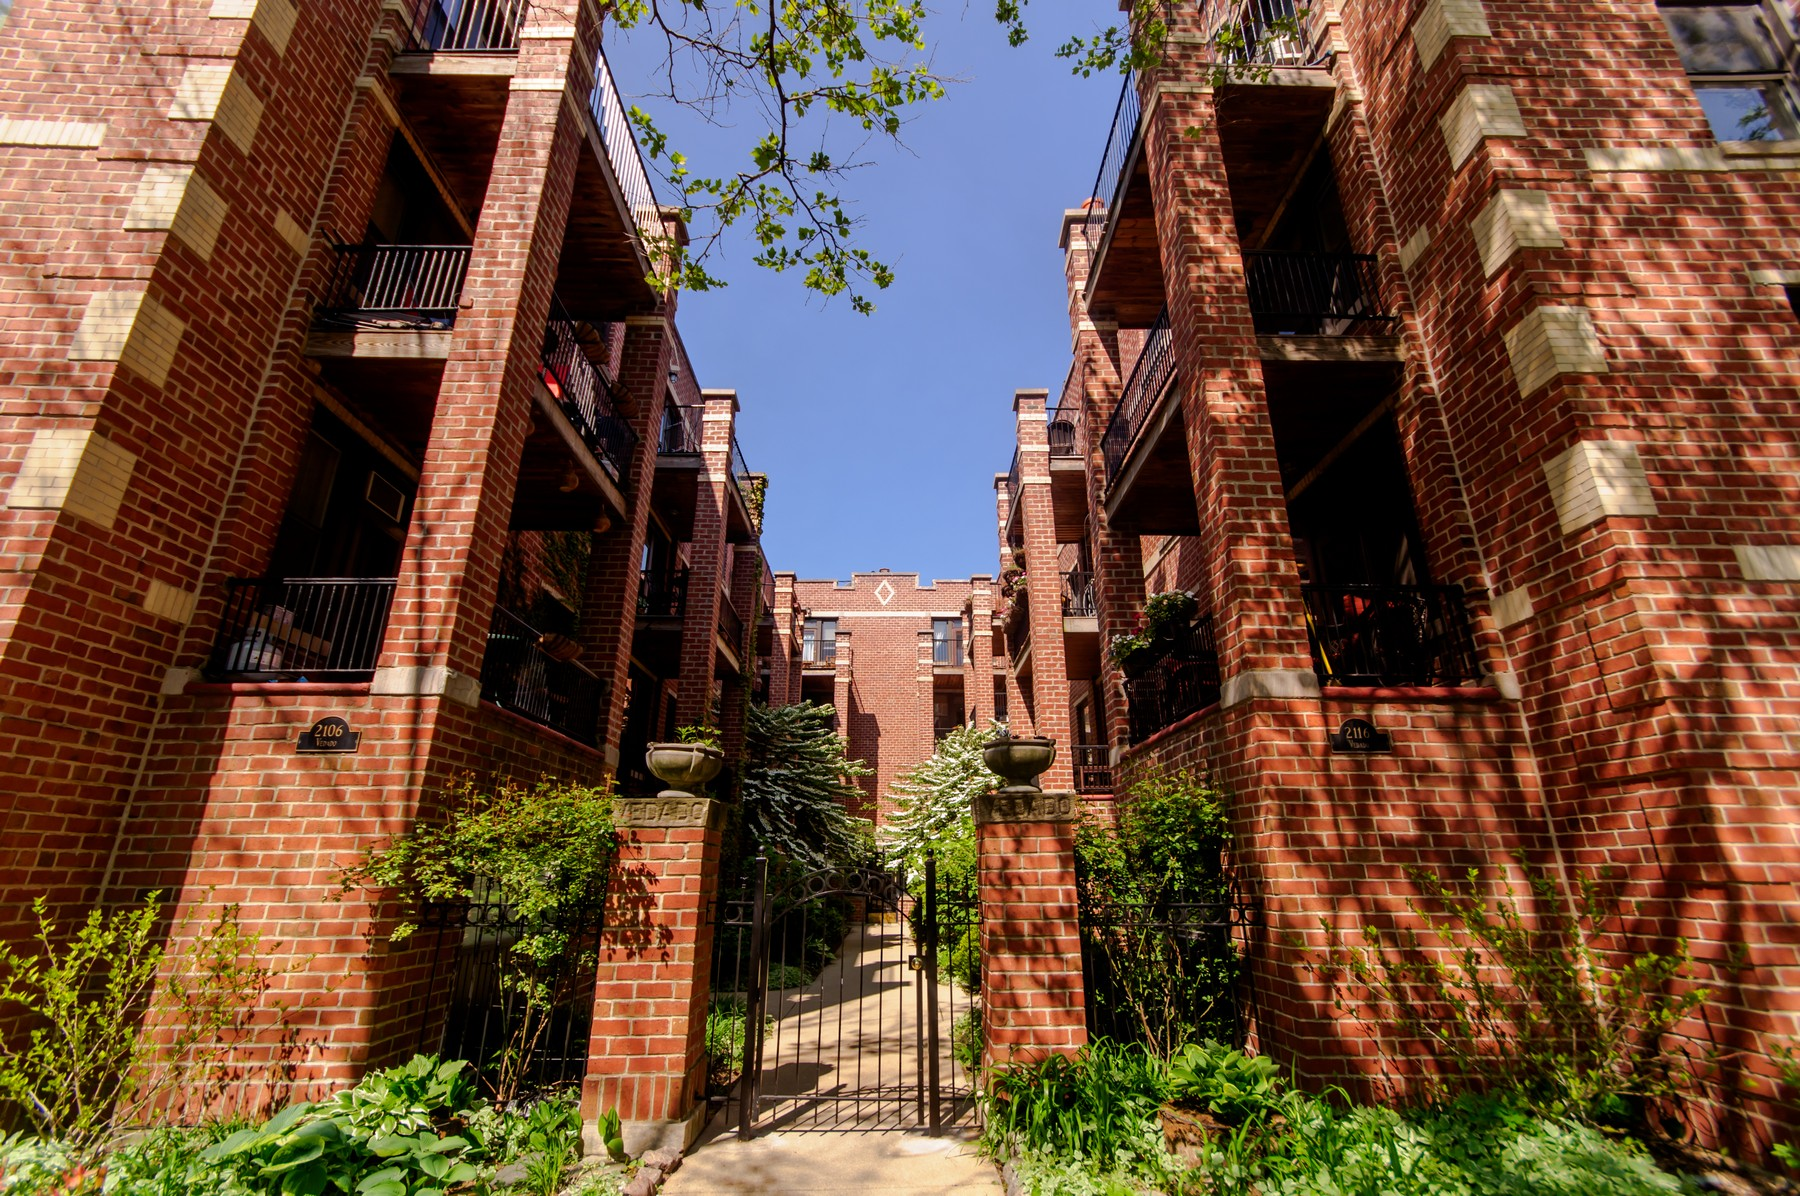 Casa Unifamiliar por un Venta en Stunning Condo in Courtyard Building 2108 N Seminary Avenue Unit 5 Lincoln Park, Chicago, Illinois, 60614 Estados Unidos